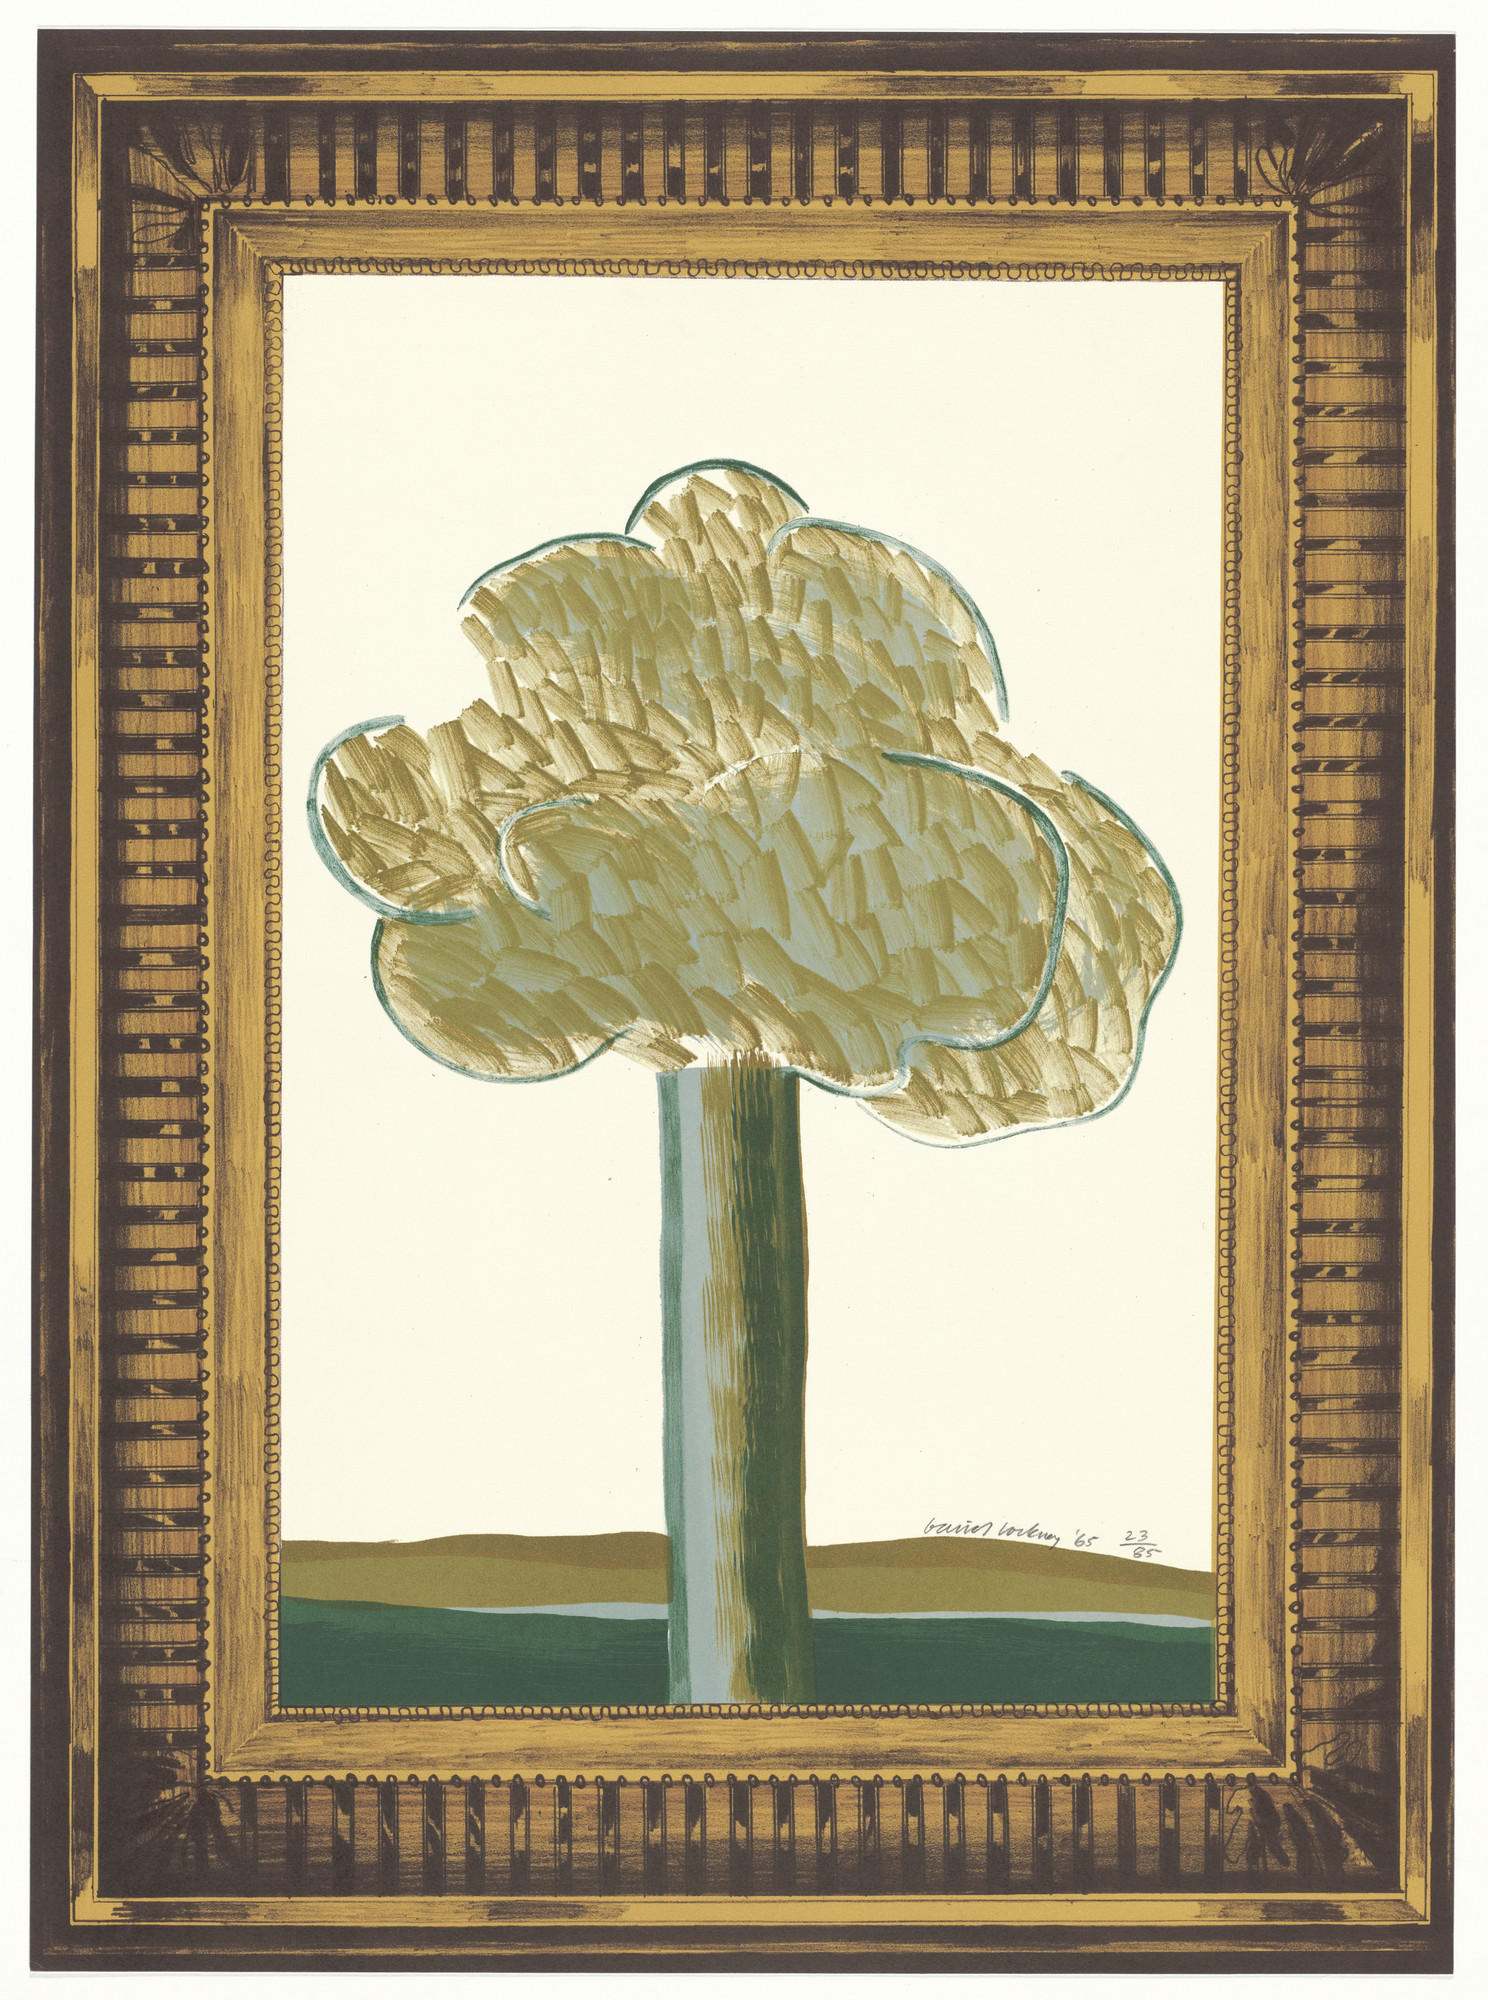 David Hockney. Picture of a Landscape in an Elaborate Gold Frame from A Hollywood Collection. 1965